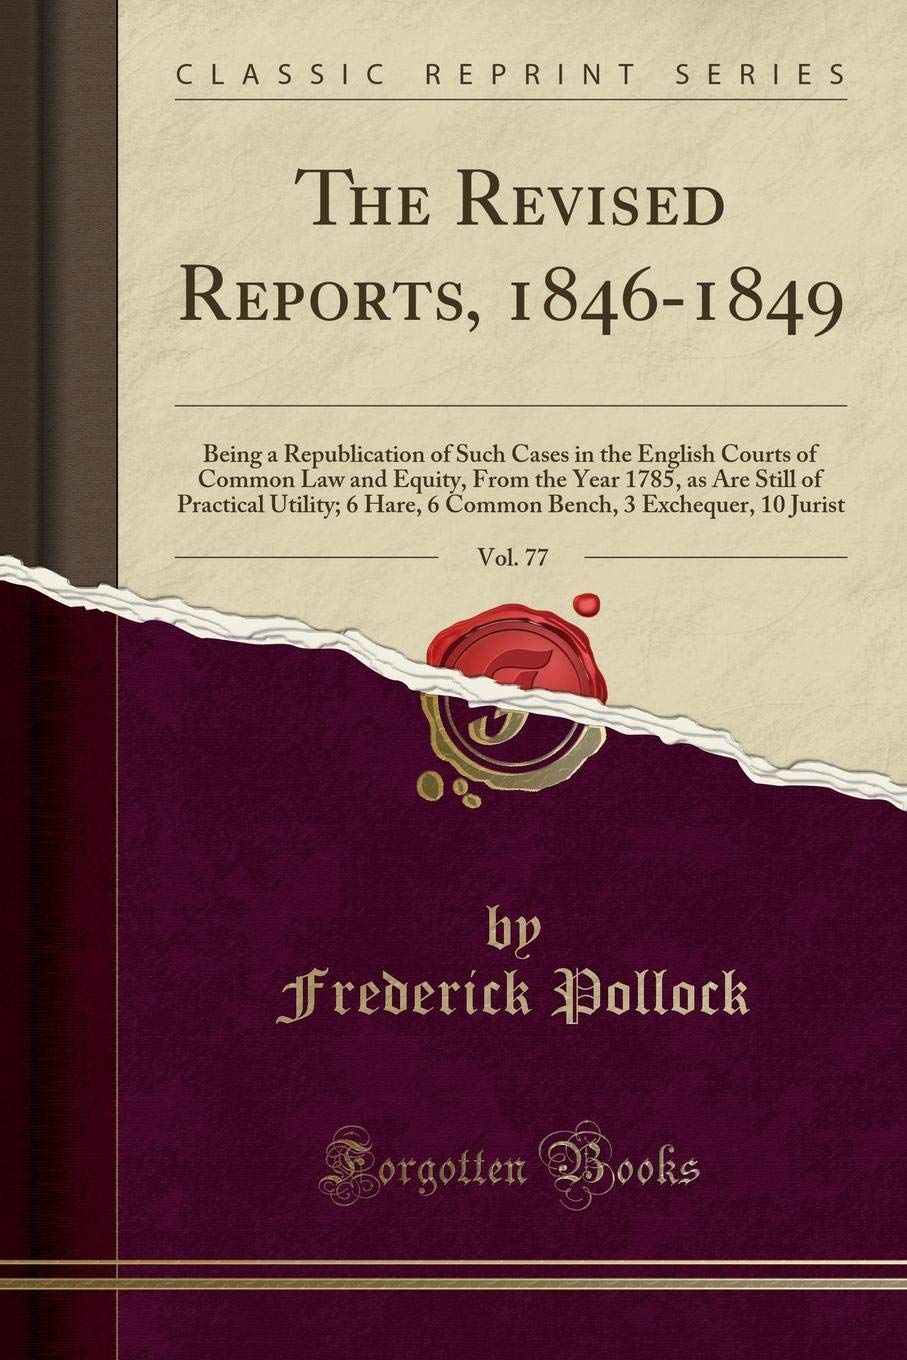 Read Online The Revised Reports, 1846-1849, Vol. 77: Being a Republication of Such Cases in the English Courts of Common Law and Equity, From the Year 1785, as ... 3 Exchequer, 10 Jurist (Classic Reprint) PDF